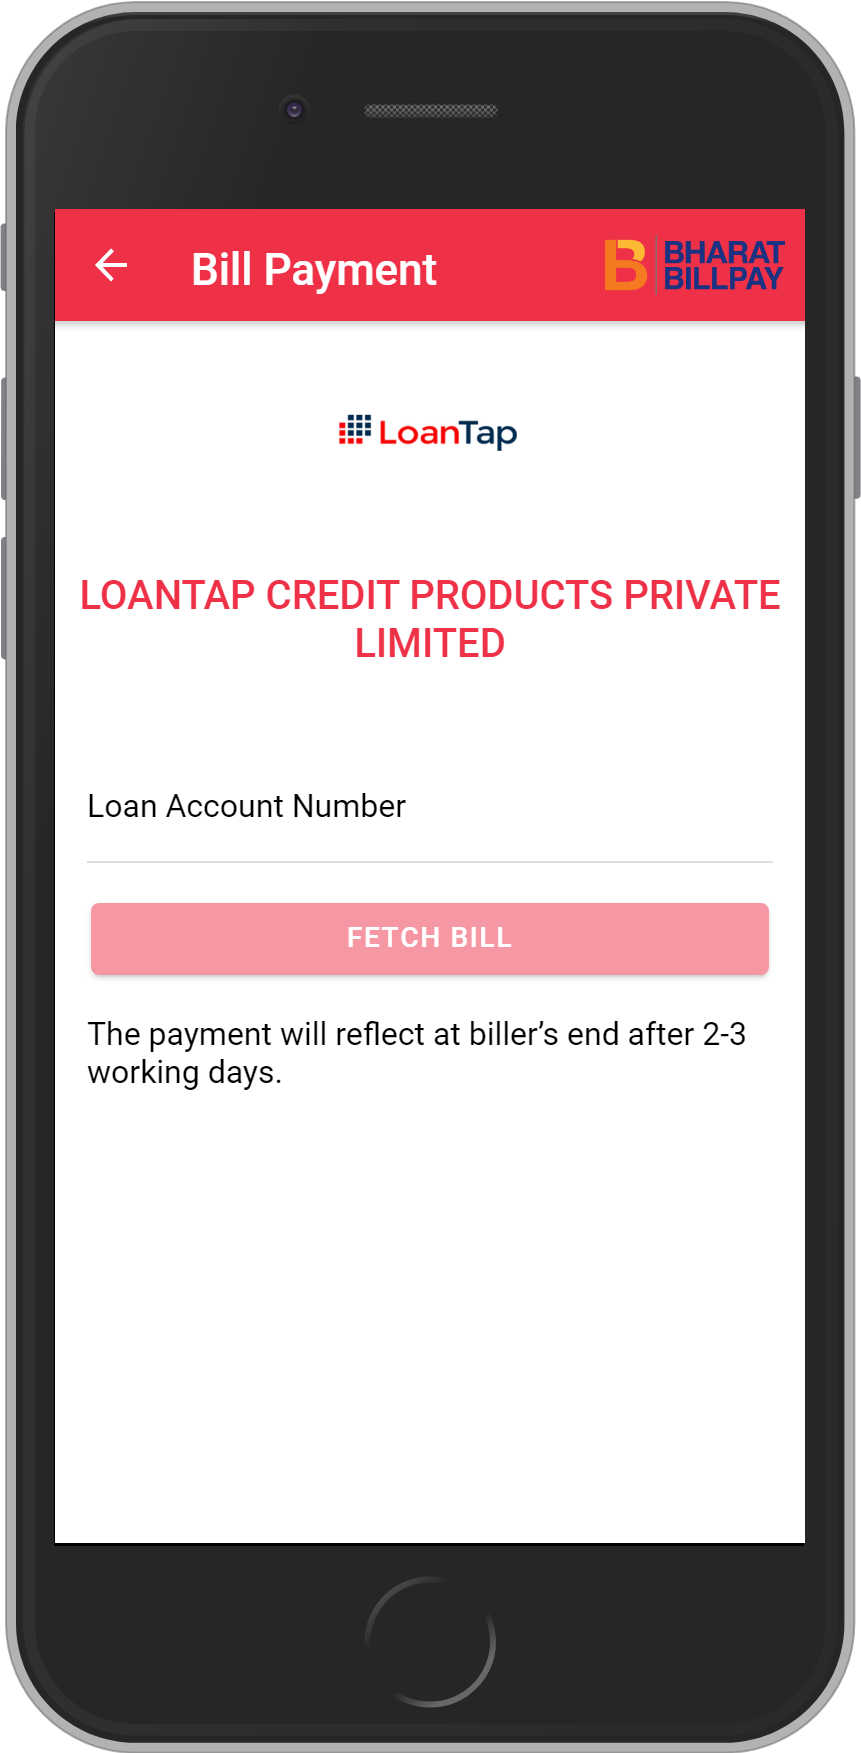 Get UNLIMITED <b>0.1%</b> CASHBACK on LOANTAP CREDIT PRODUCTS PRIVATE LIMITED Loan Payment.